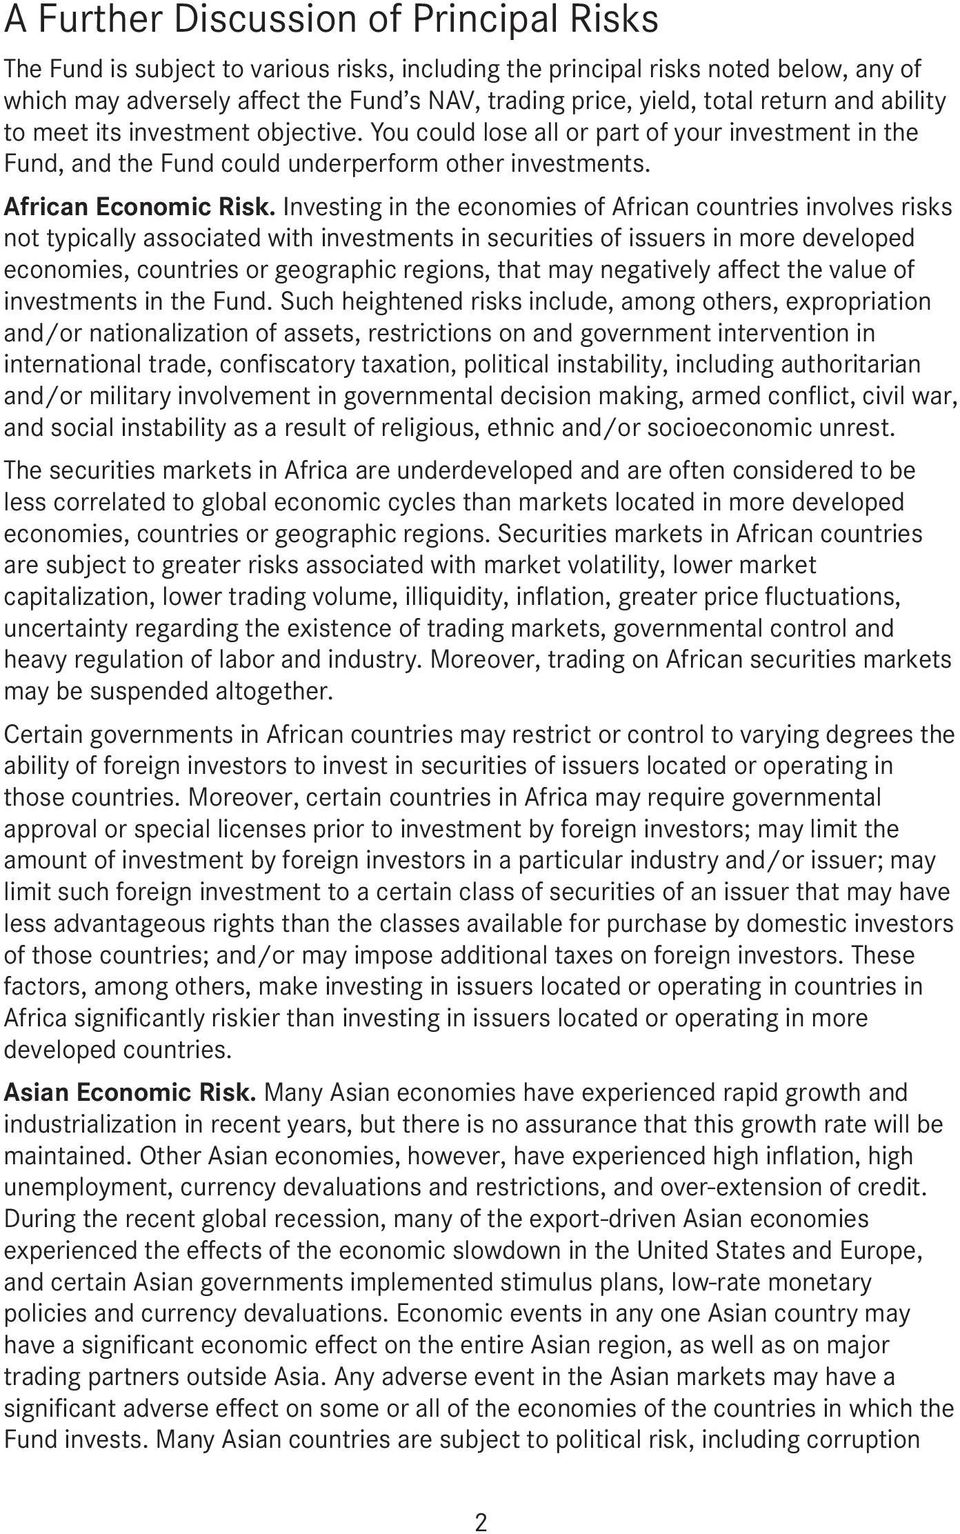 Investing in the economies of African countries involves risks not typically associated with investments in securities of issuers in more developed economies, countries or geographic regions, that